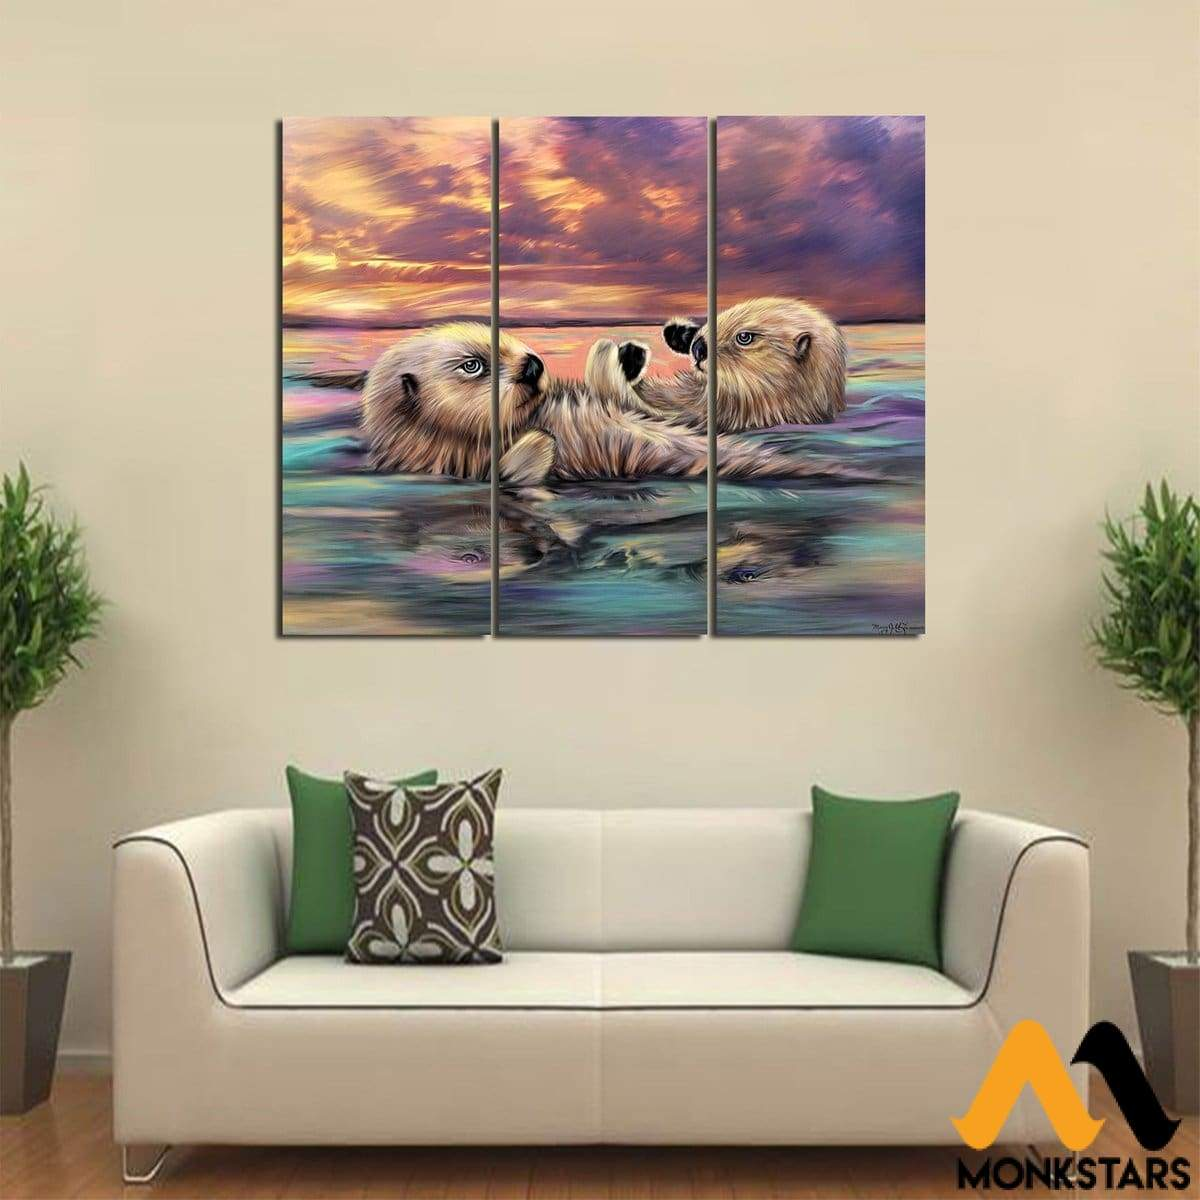 3-Piece Otter Printed Canvas Wall Art Painting & Calligraphy